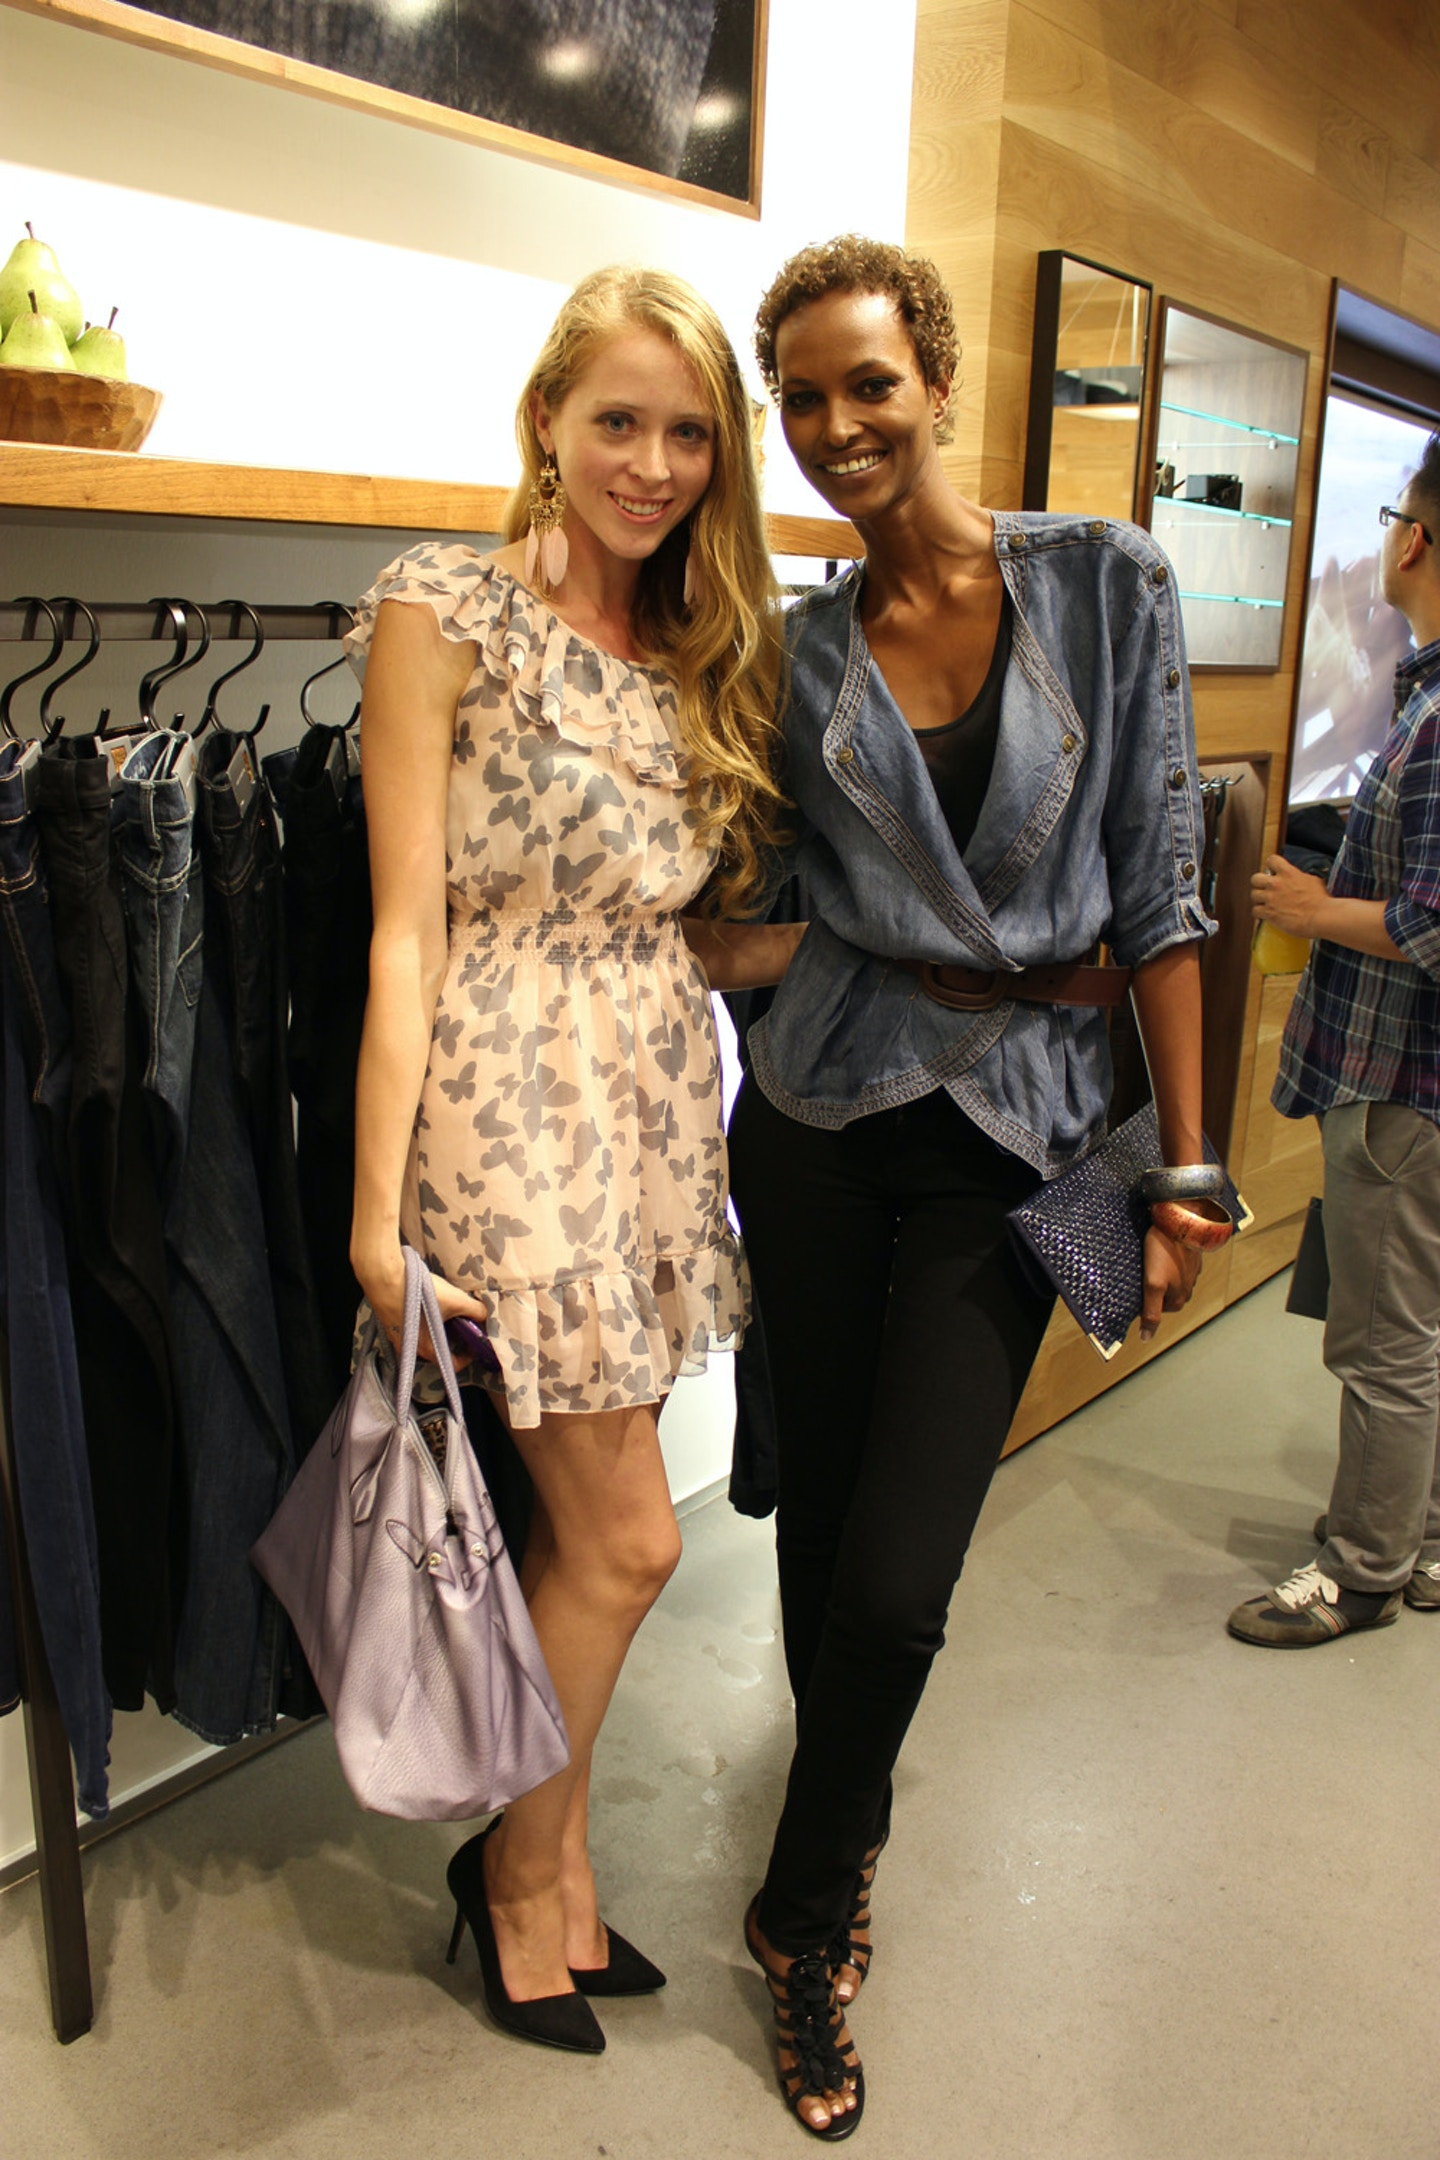 7 For All Mankind Store Opening